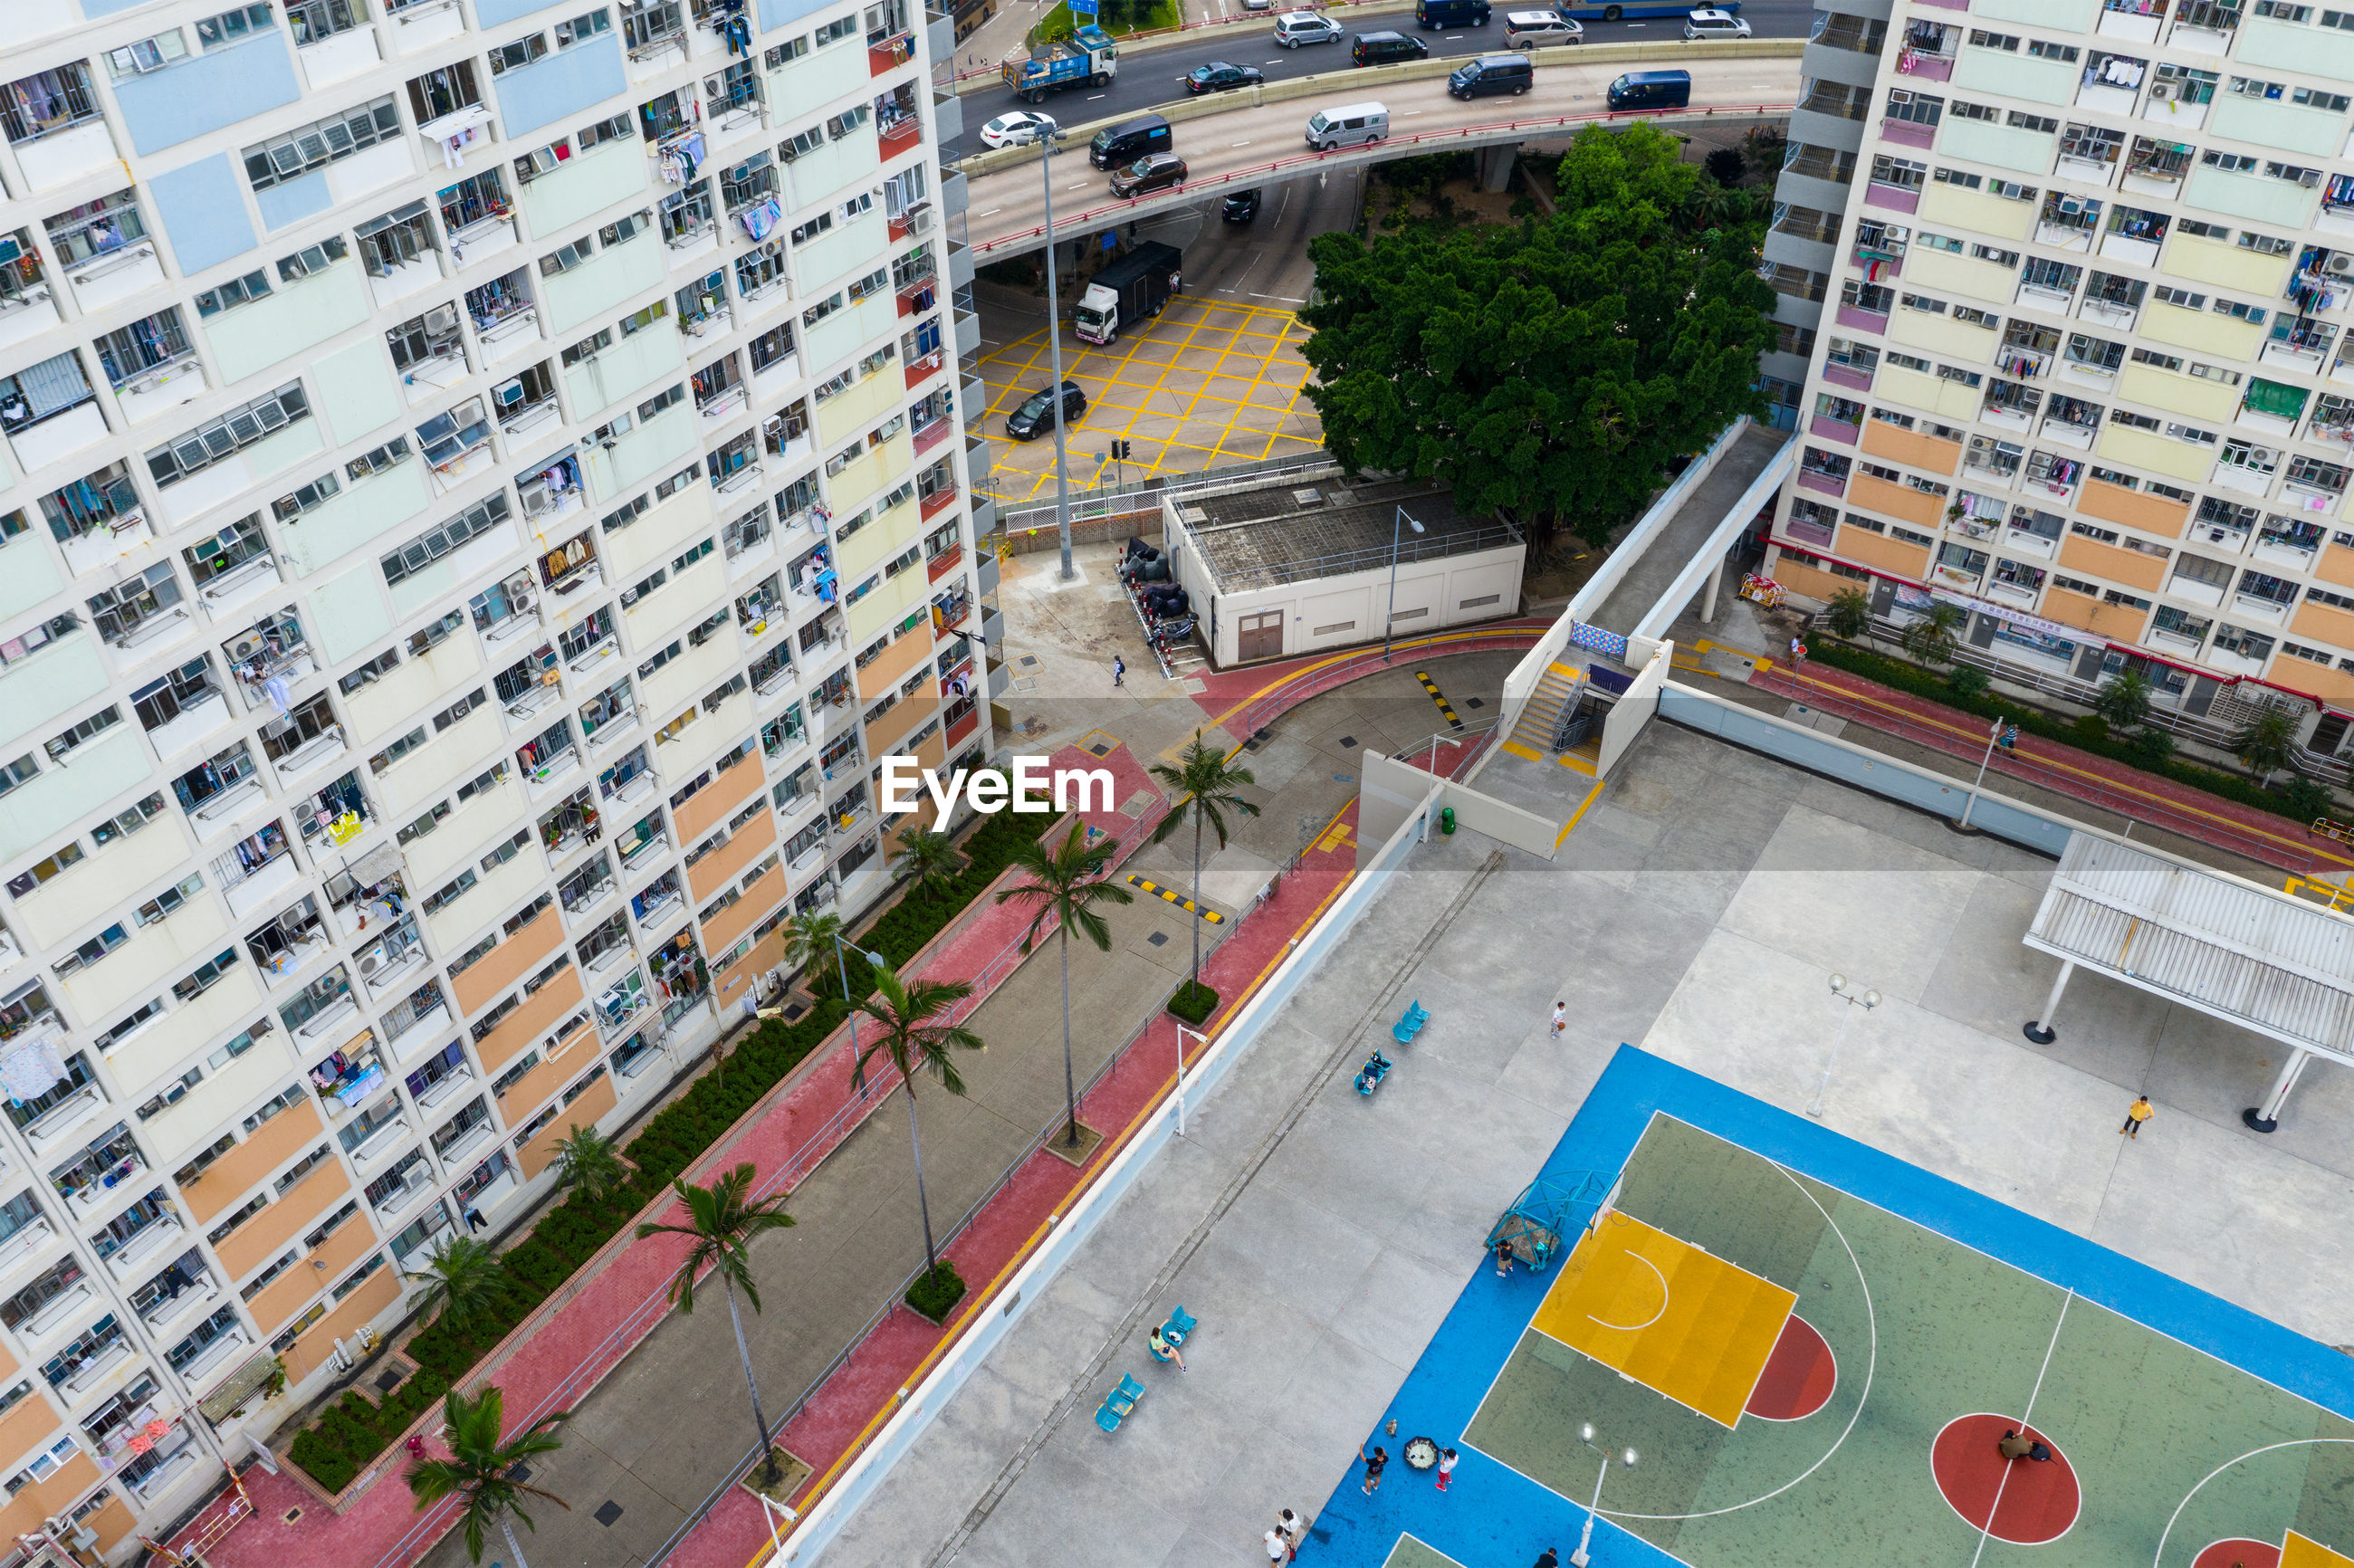 High angle view of buildings by playground in city